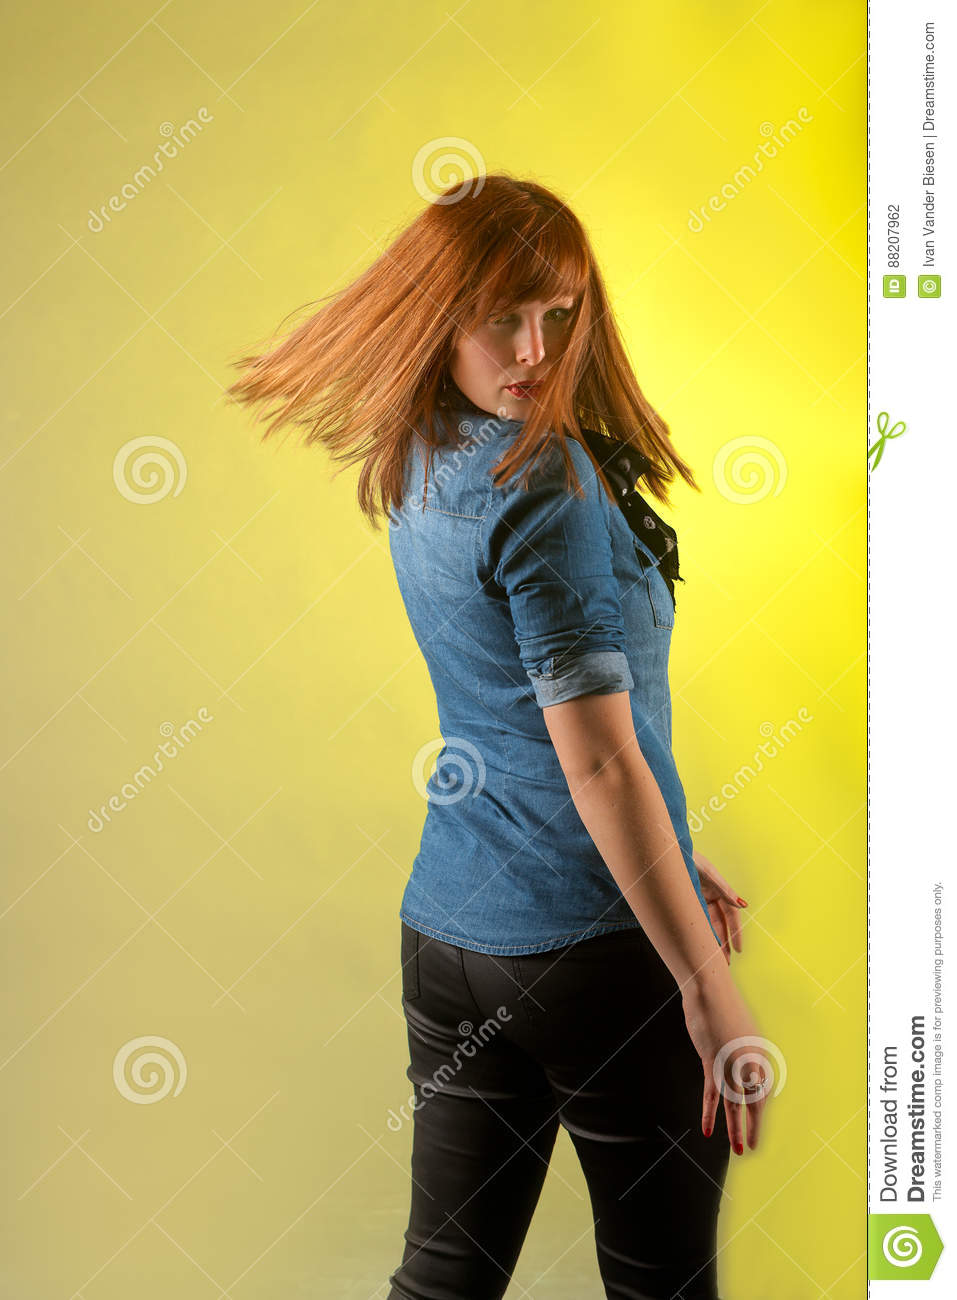 1be62f80512f1 Redhead woman turning from the back looking looking in the camera wearing a  blue jeans shirt and black leather trousers on a yellowish background.